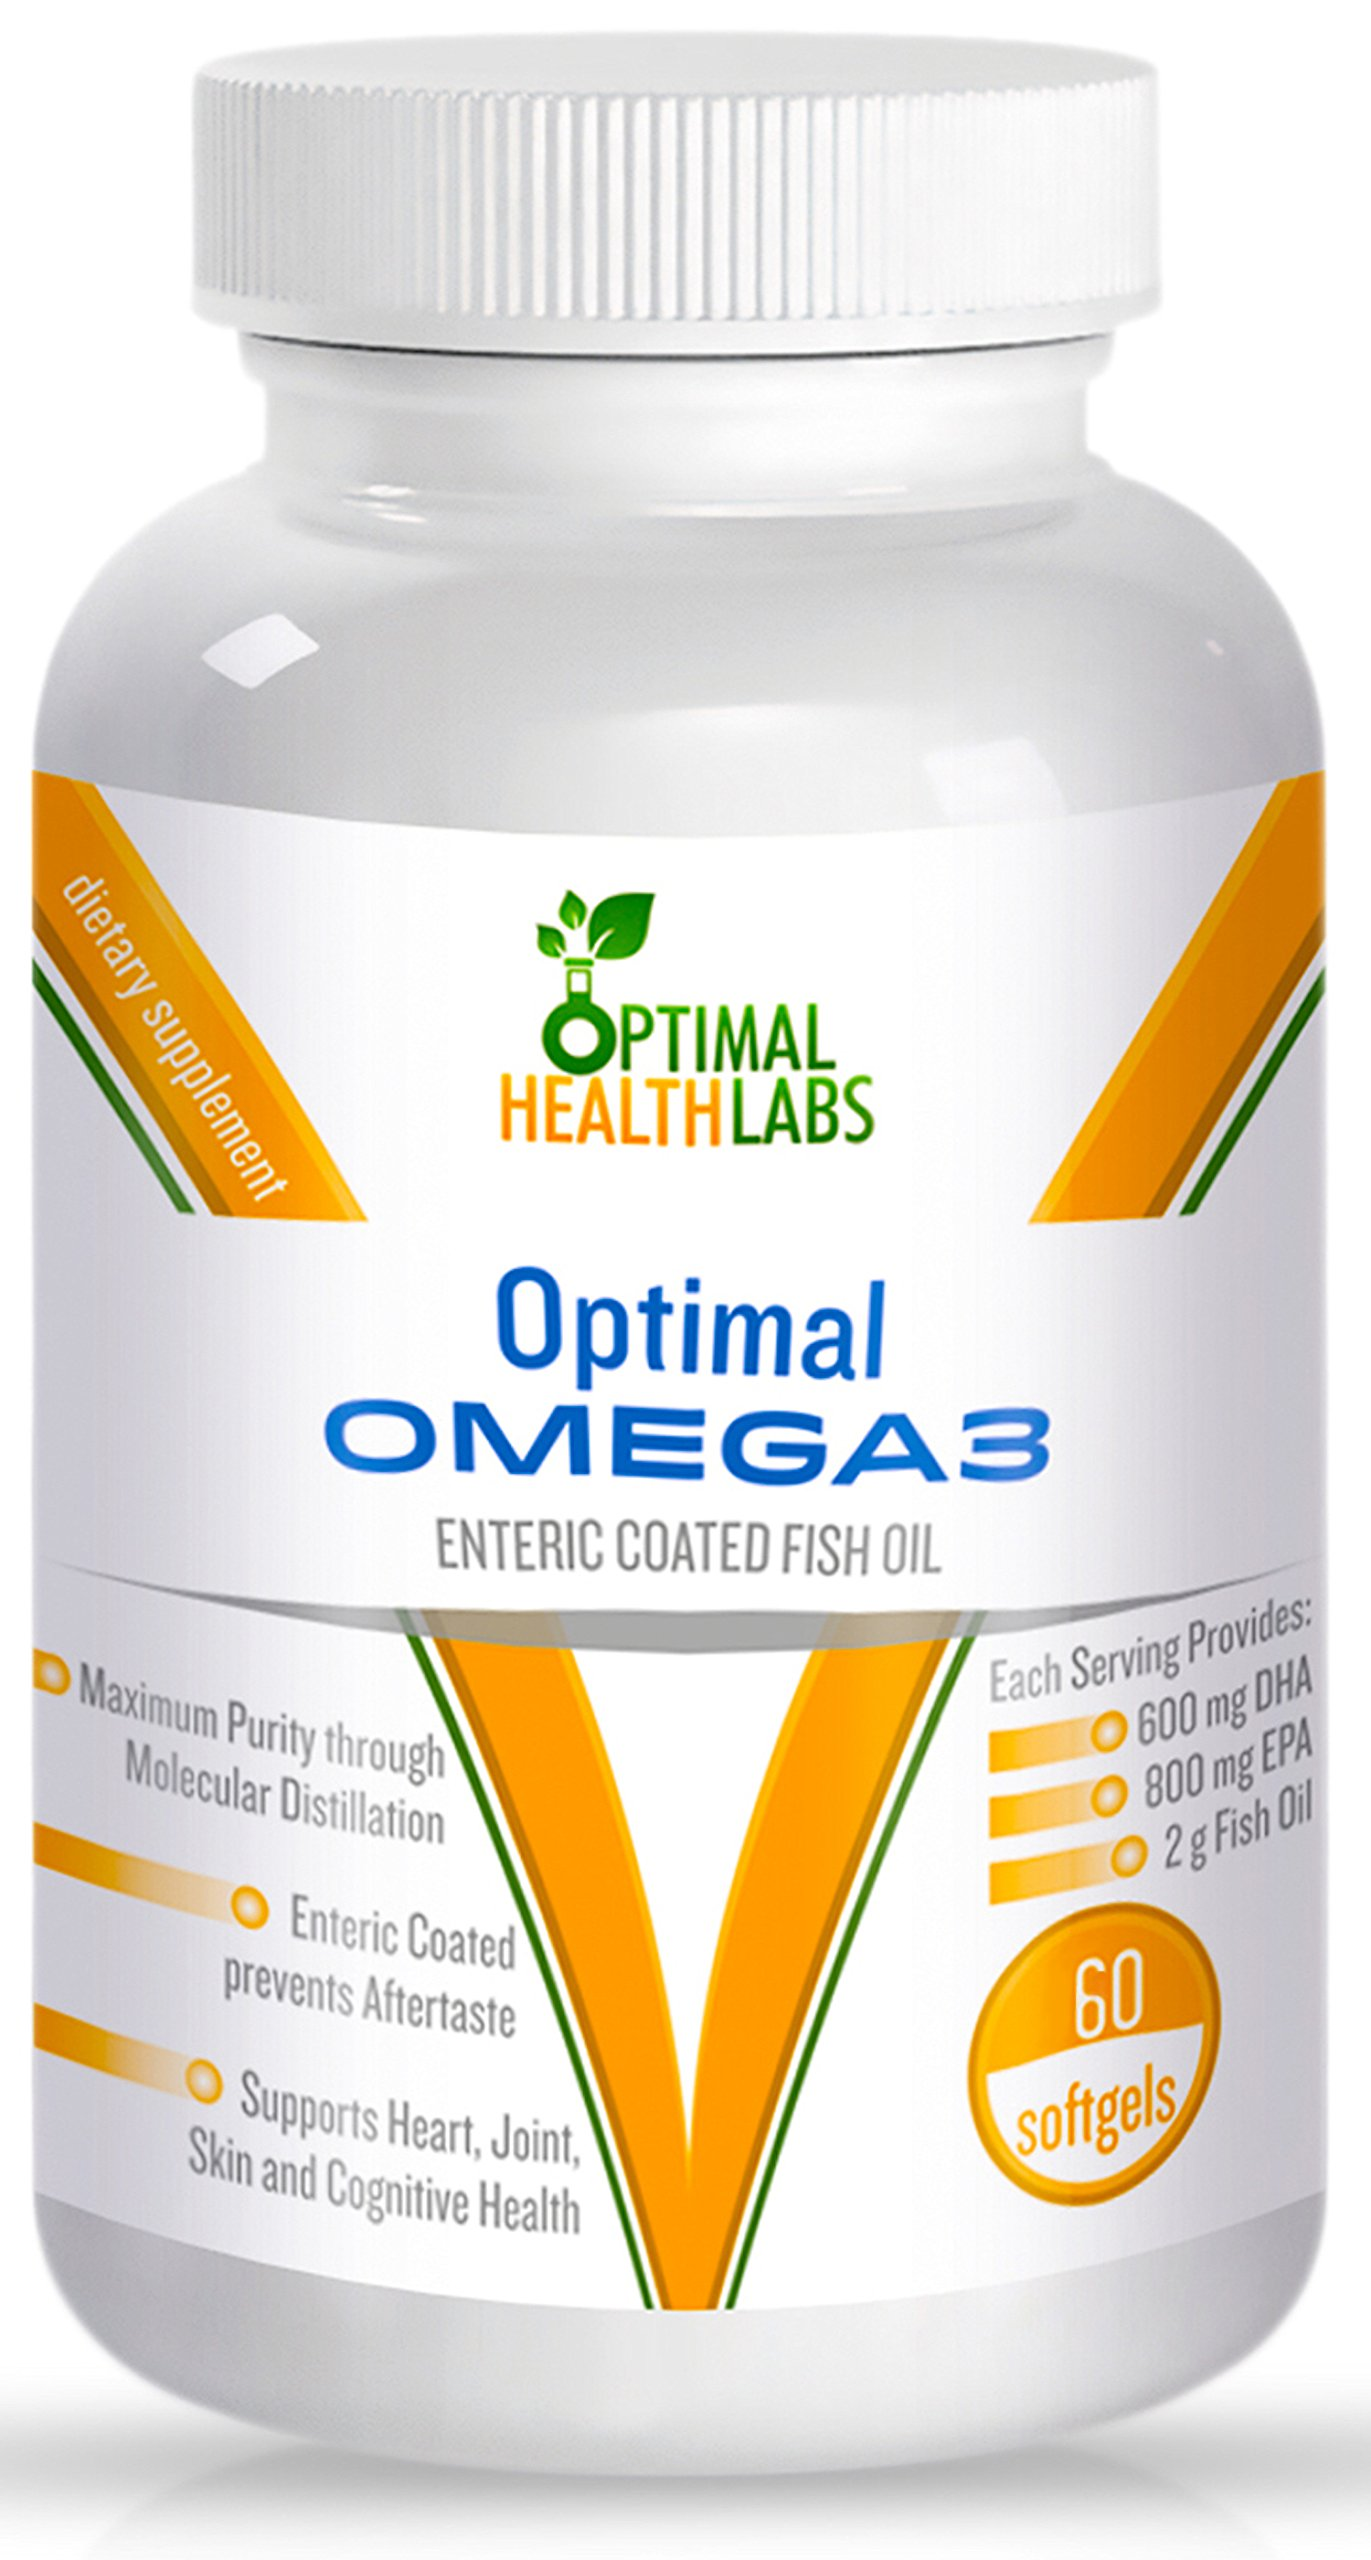 Omega 3 Fish Oil Burpless Pills | Perfectly Balanced 600mg DHA 800mg EPA Supplement | Maximum Absorption | Ideal Potency | No Toxins | All The Best Benefits, No Fishy Aftertaste! by Optimal Health Labs